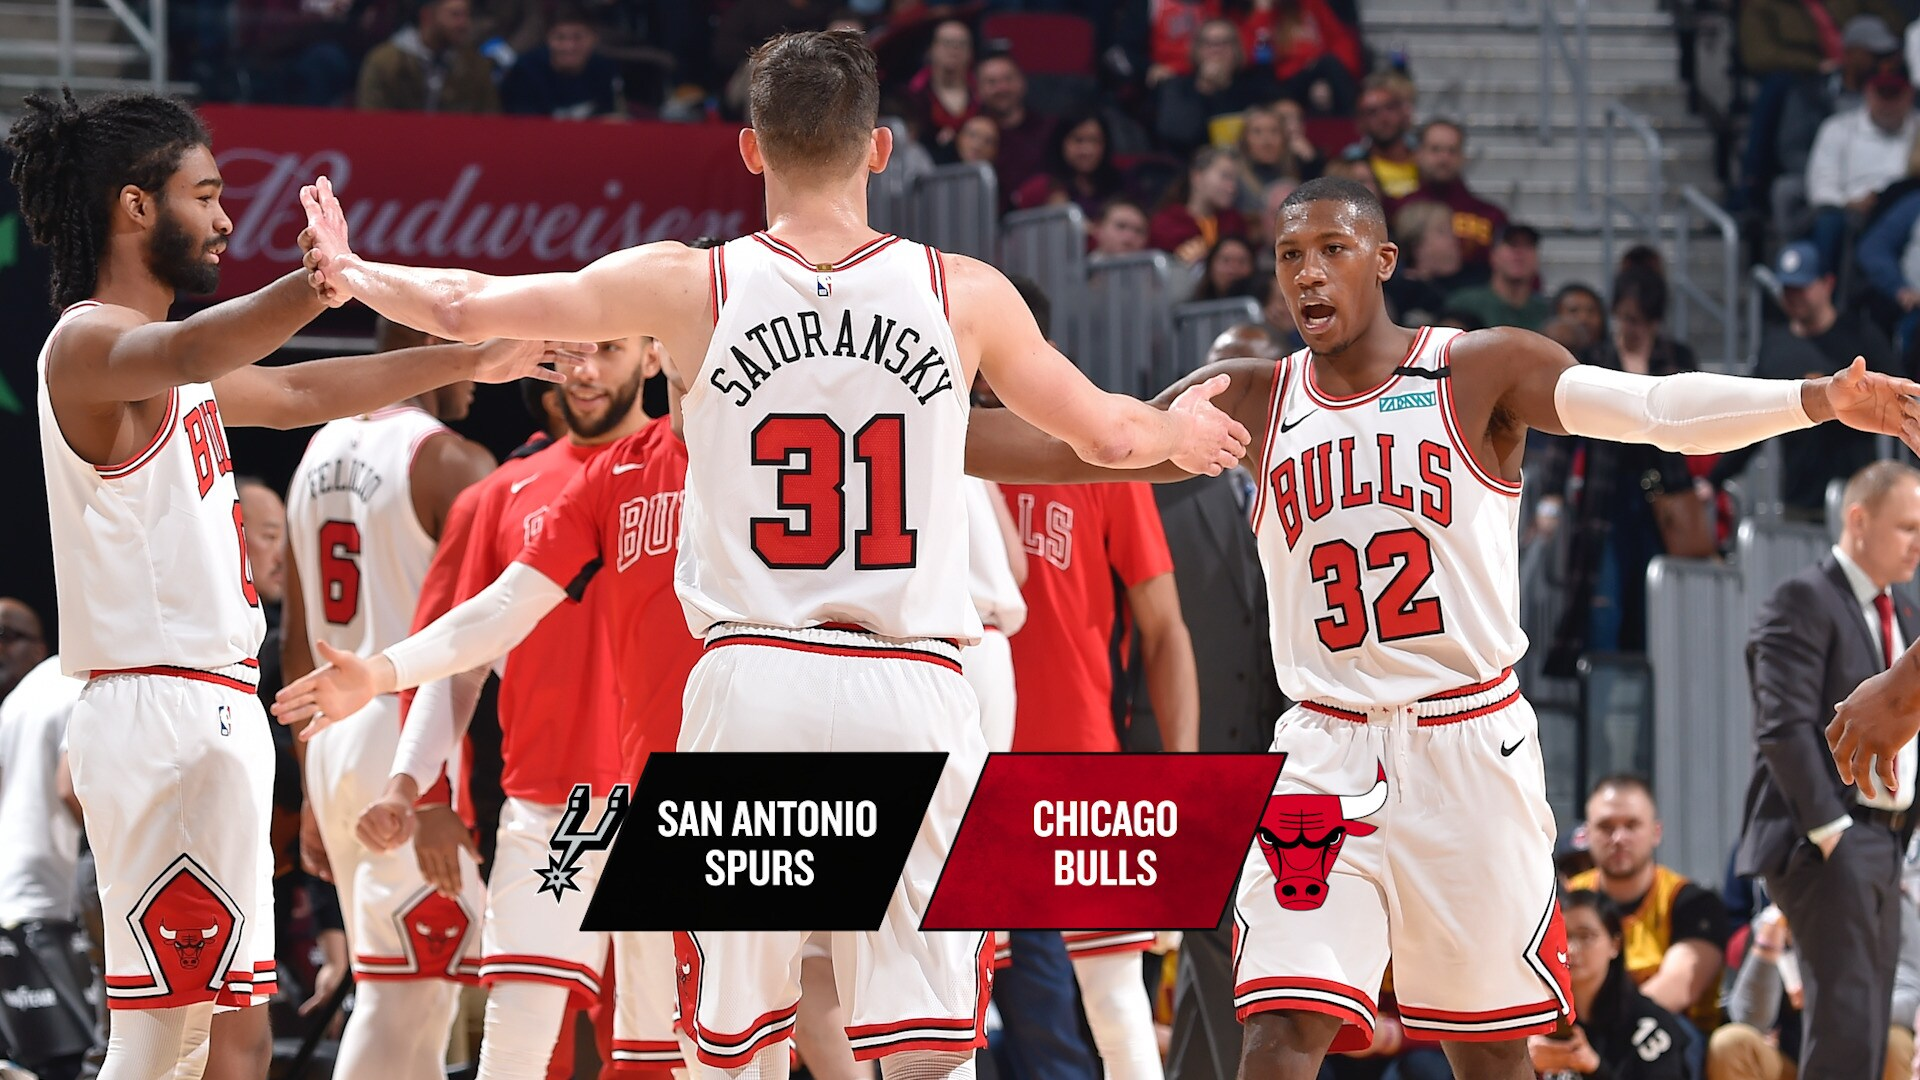 BullsTV Preview: Bulls vs. Spurs - 1.27.20